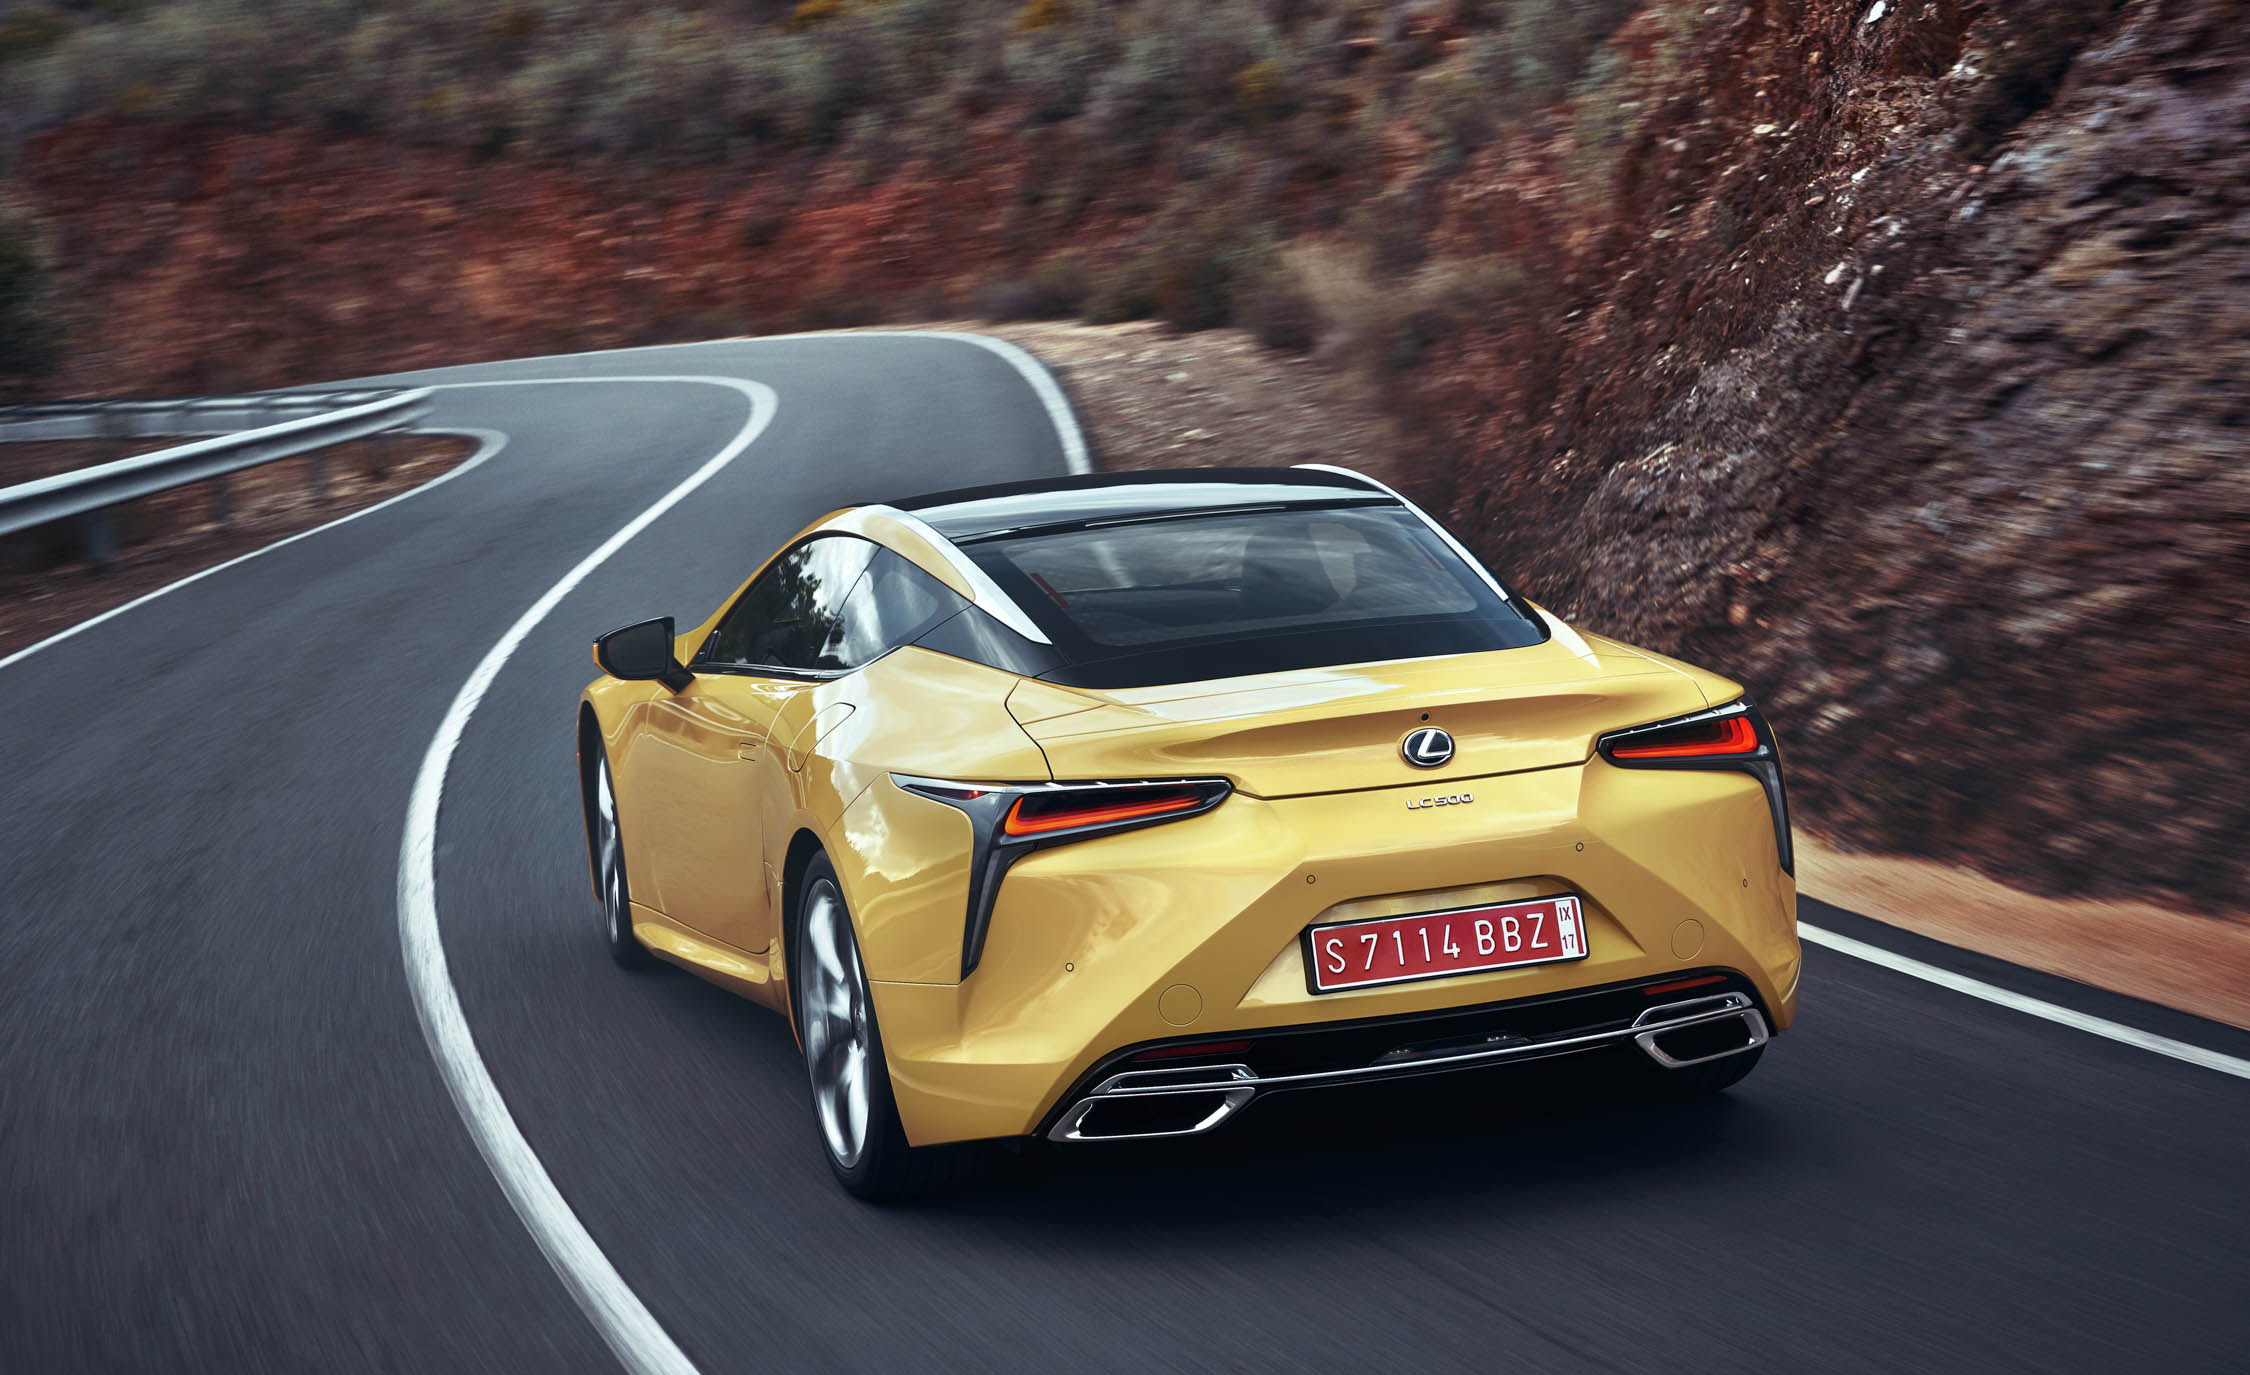 New 2018 Lexus Lc500 Rear View (Photo 82 of 84)